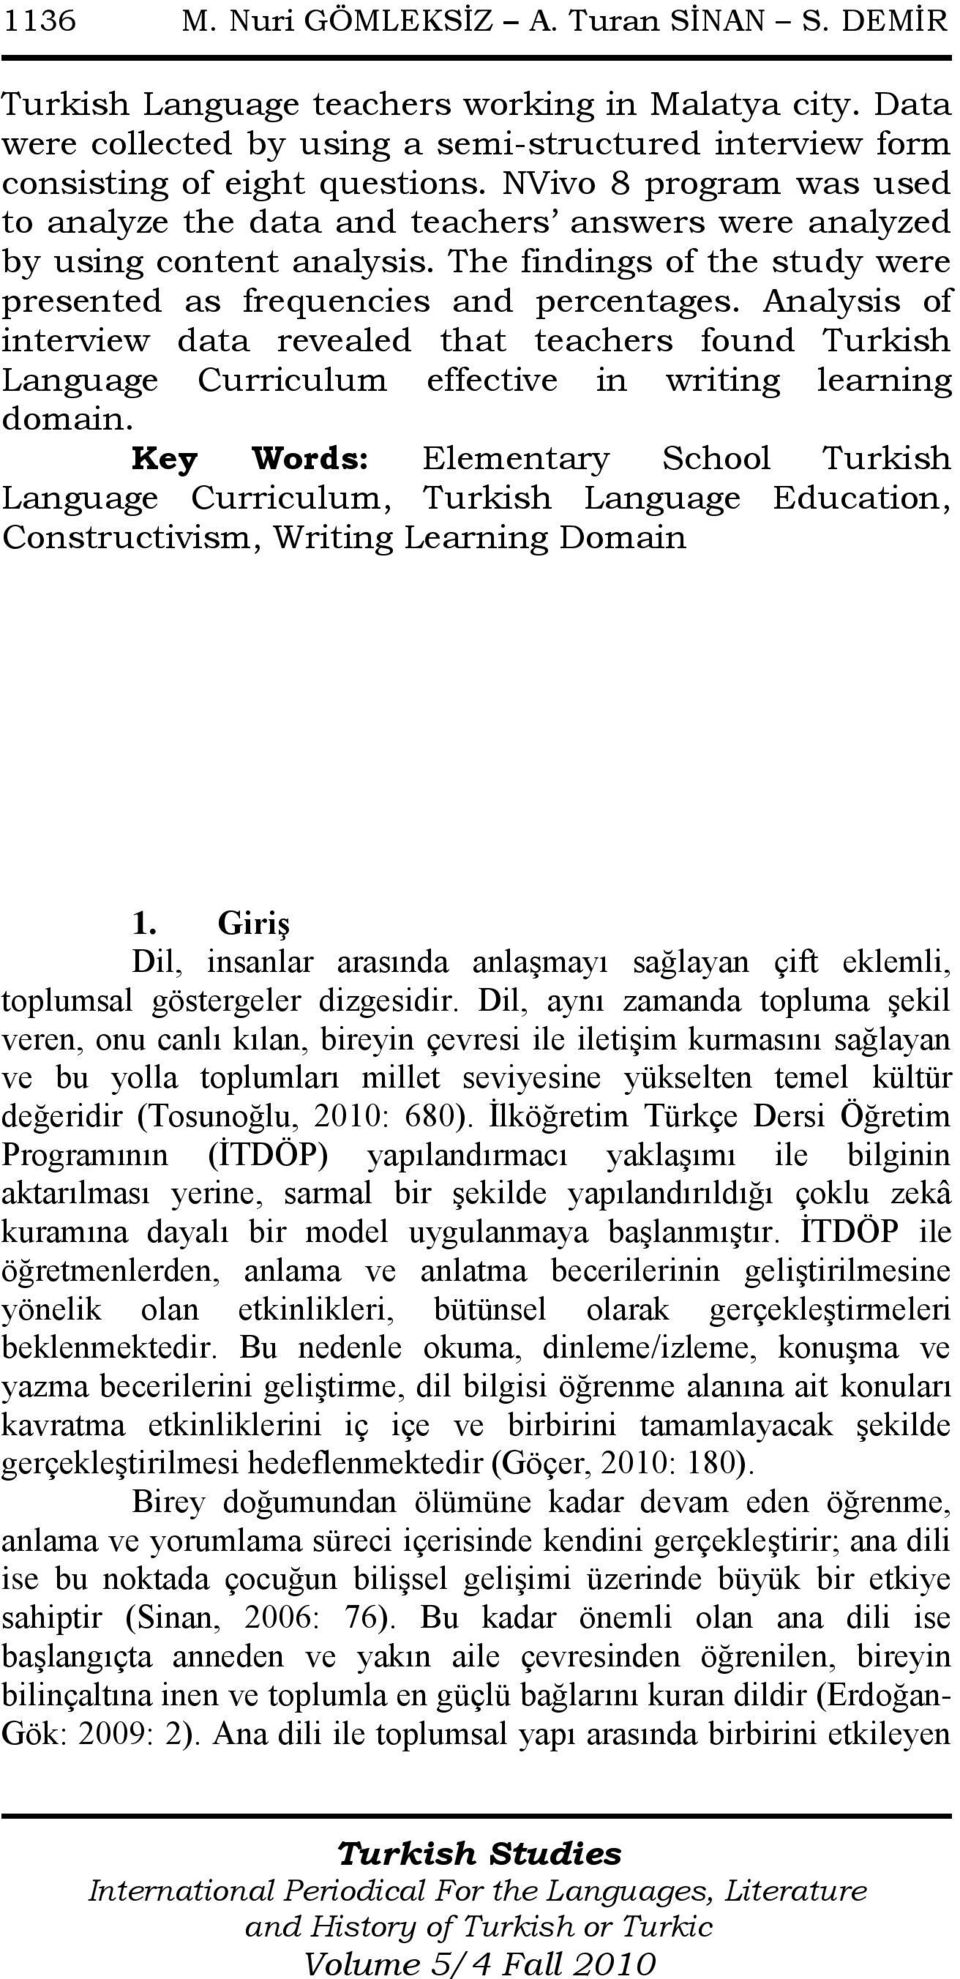 Analysis of interview data revealed that teachers found Turkish Language Curriculum effective in writing learning domain.